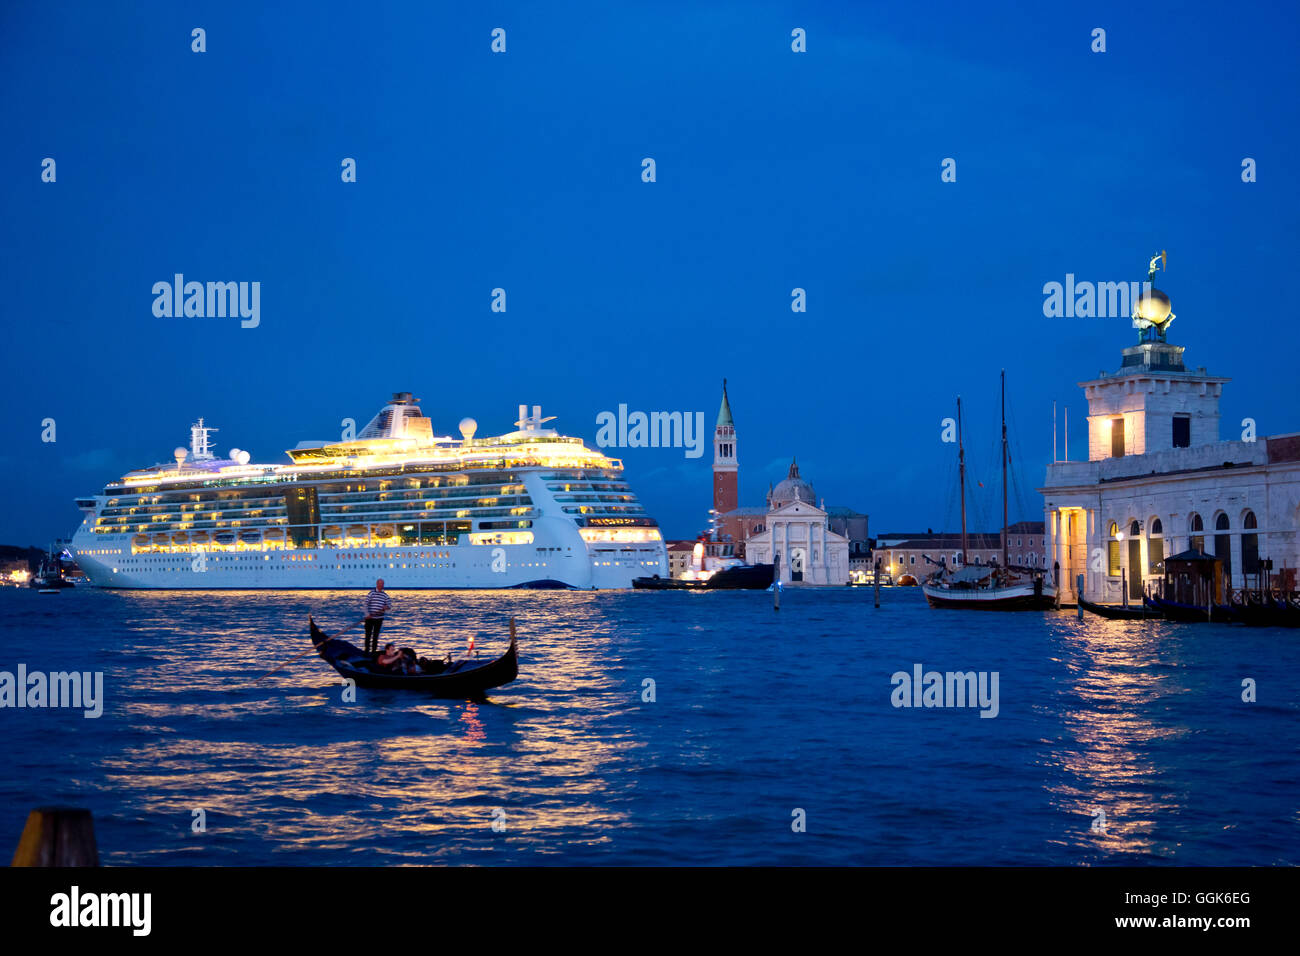 Silhouette of a gondola in front of cruise ship Serenade of the Seas (Royal Caribbean International) passing Isola - Stock Image